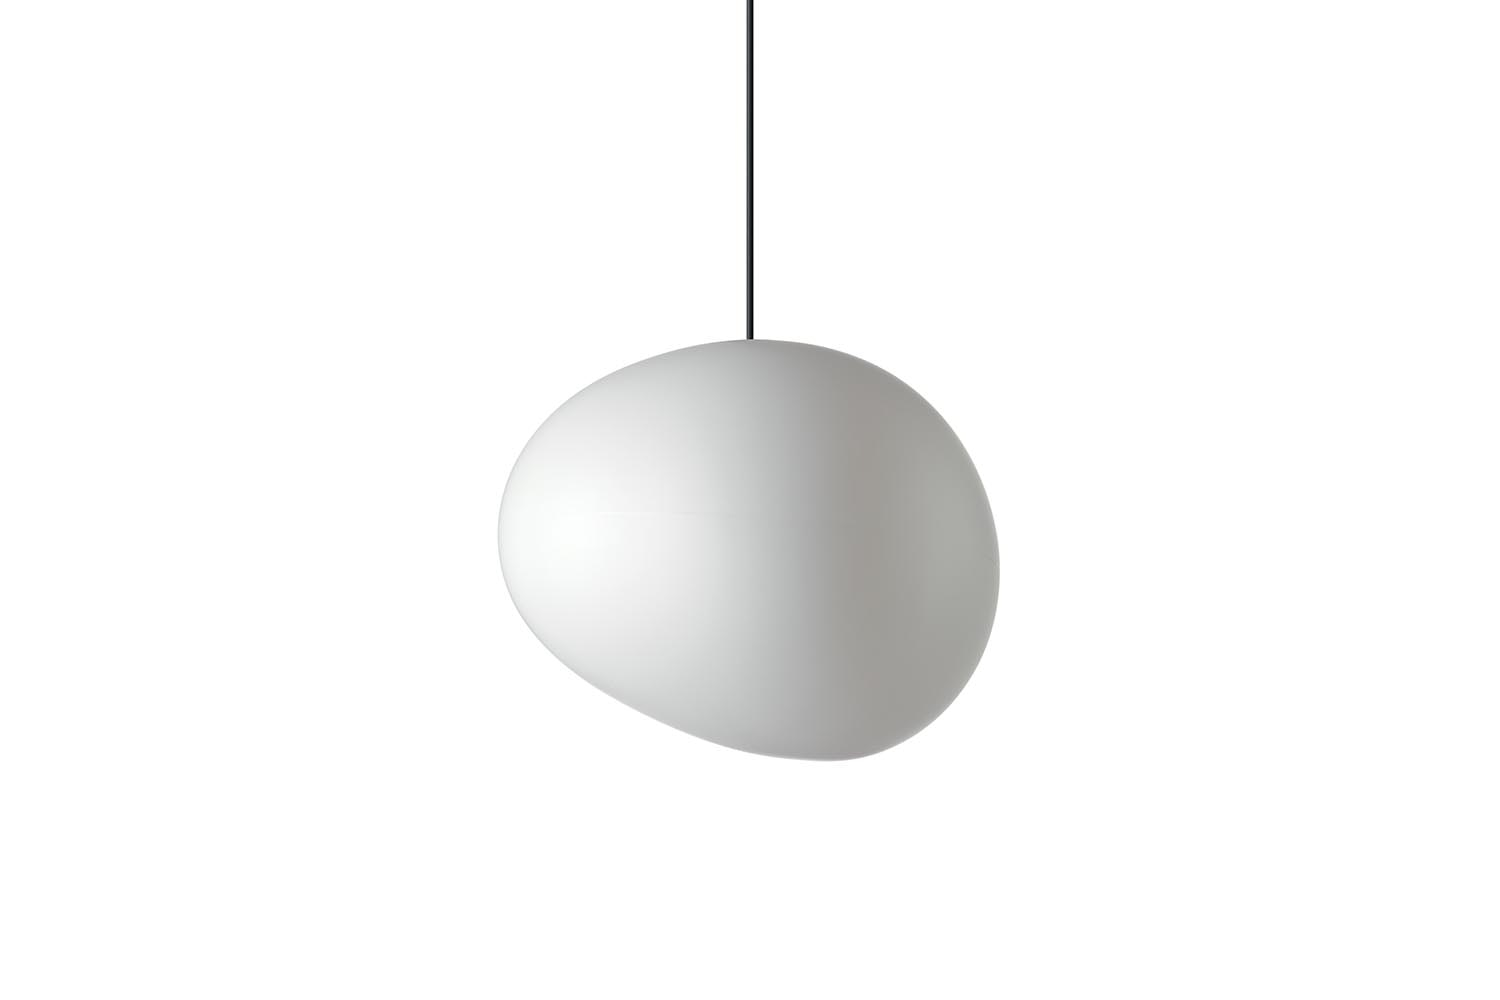 Outdoor Gregg Grande Suspension Lamp by Ludovica & Roberto Palomba for Foscarini